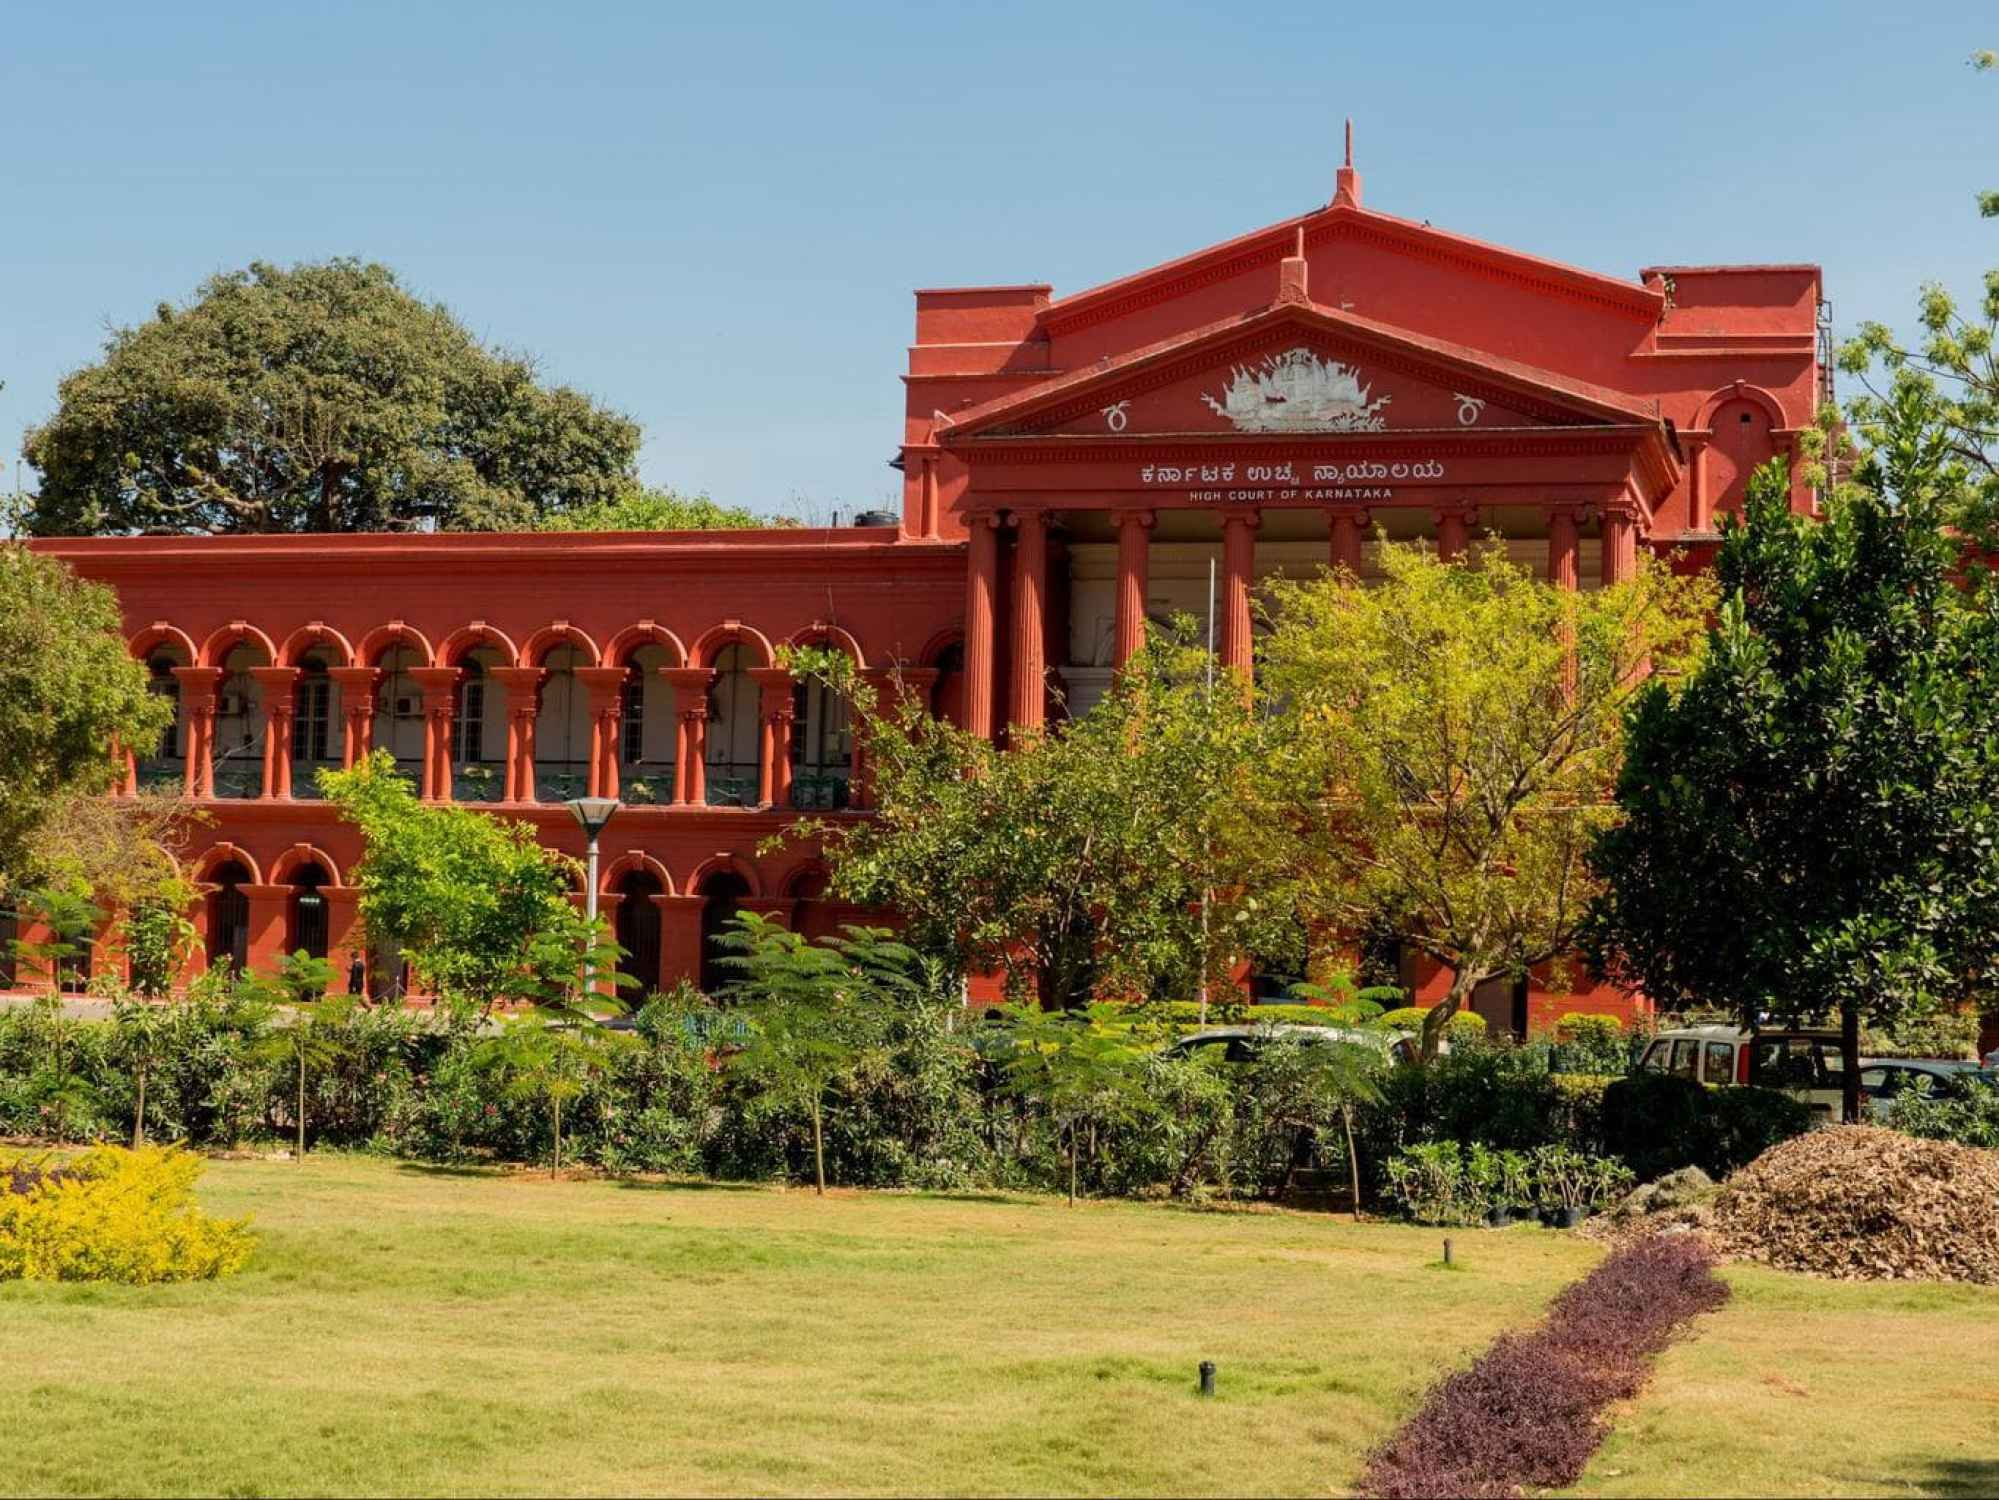 Facade of the High Court of Karnataka